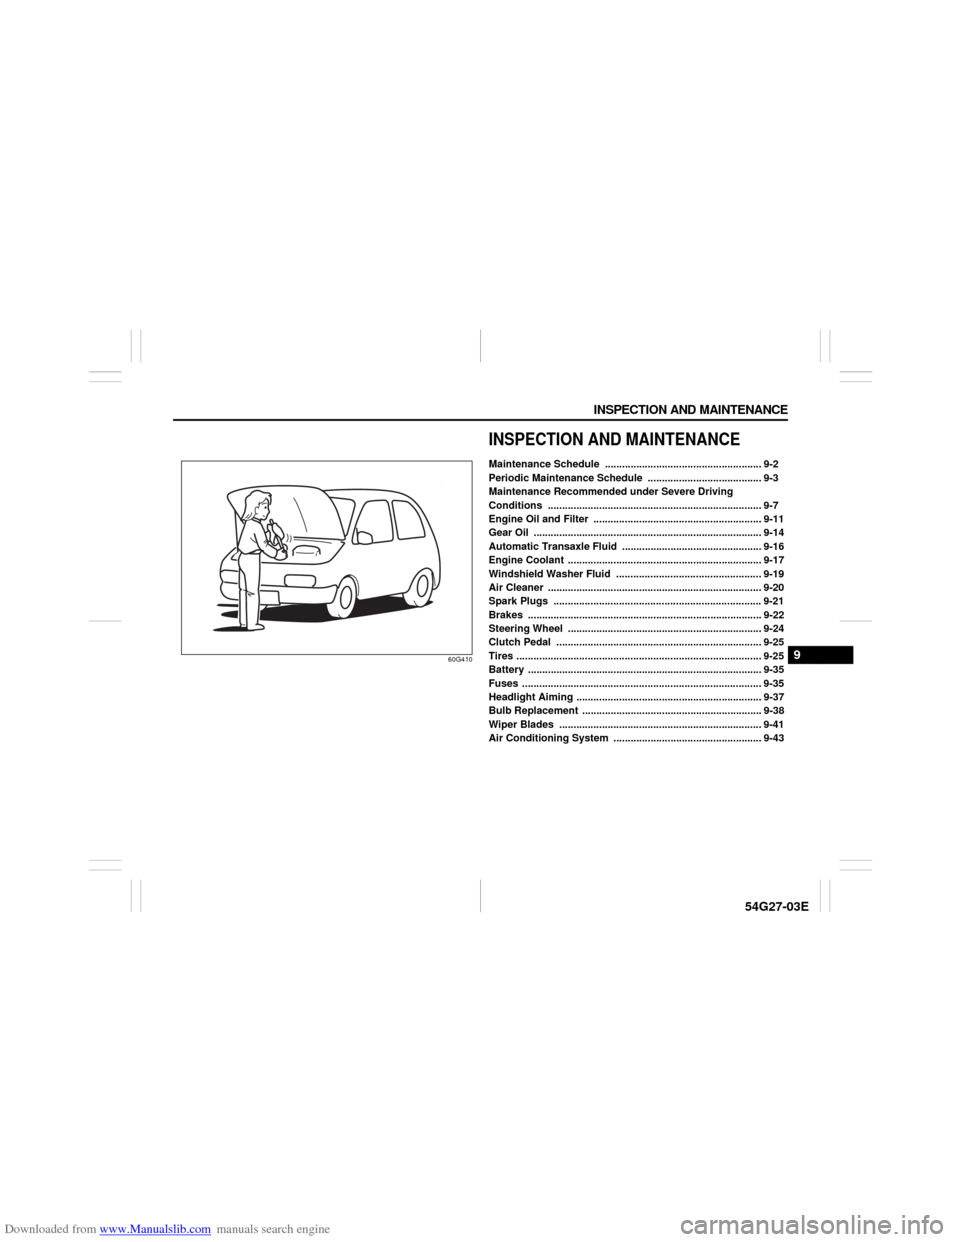 SUZUKI AERIO 2007 1.G Owners Manual (232 Pages), Page 160